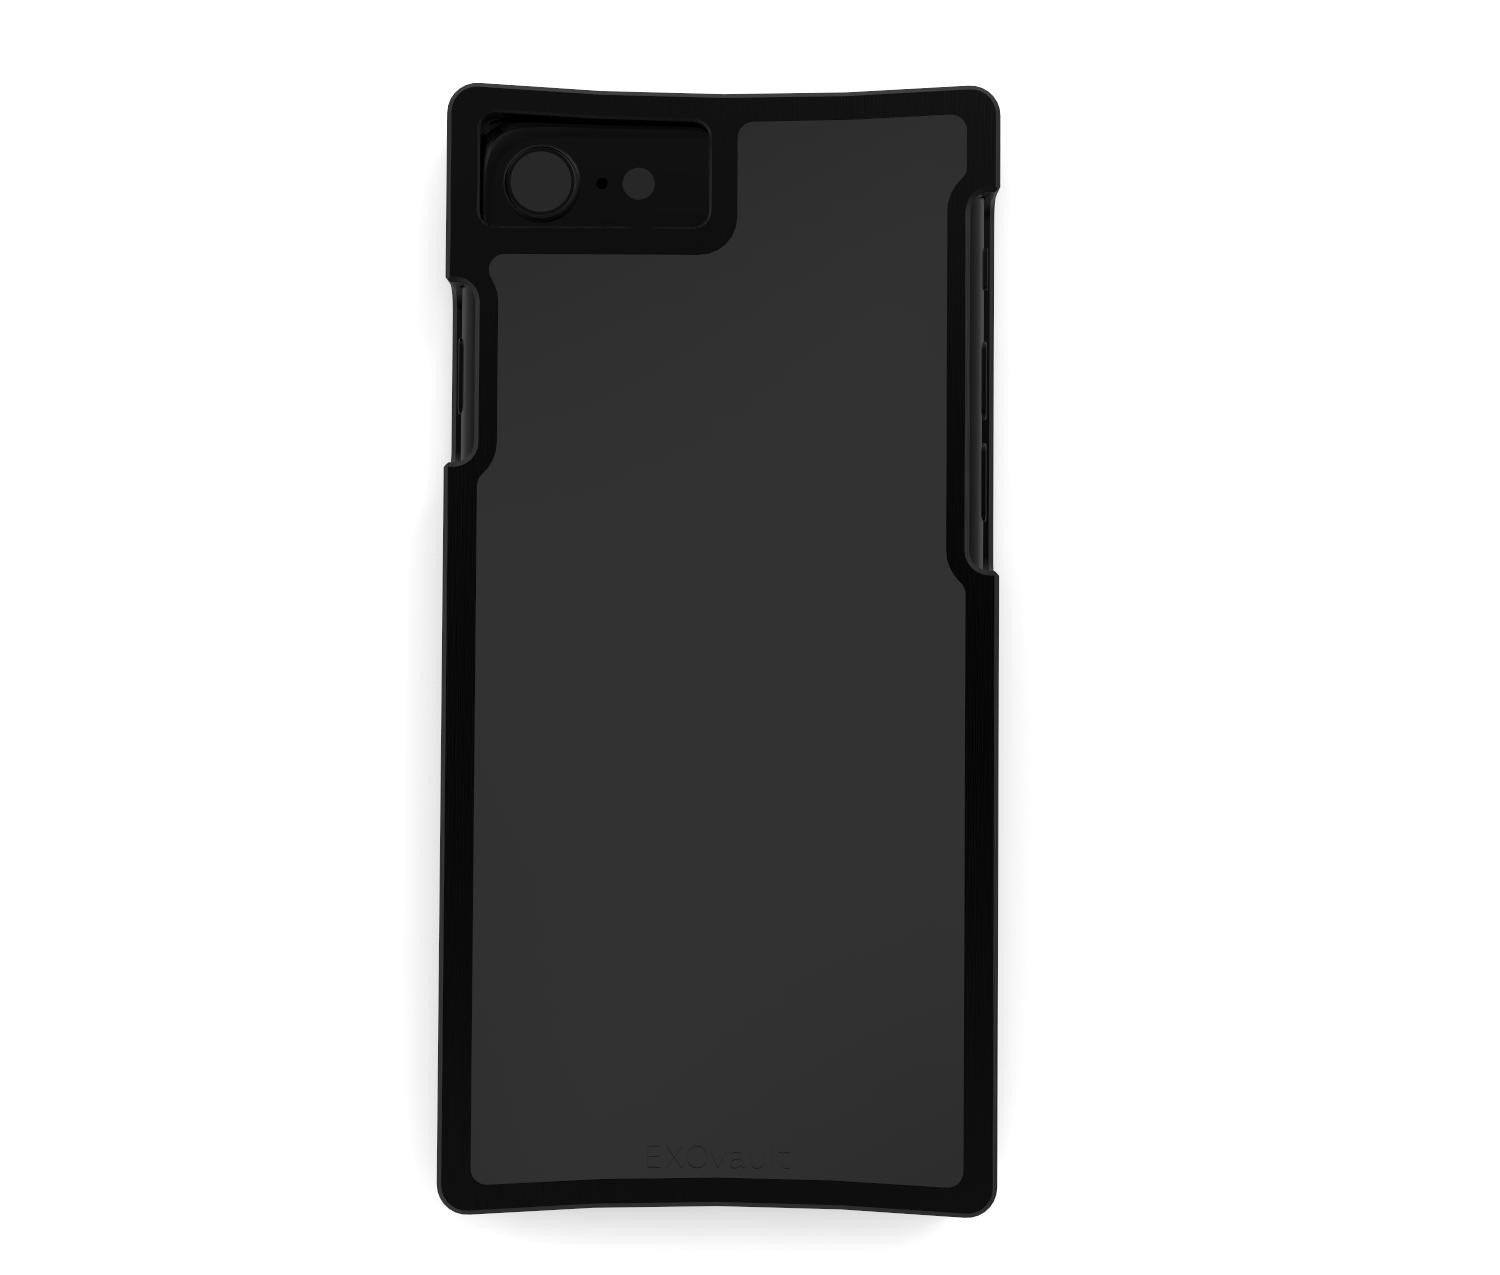 EXO23-S Black Aluminum and Matte-Black G10 for the iPhone 8/7/6s/6 Plus